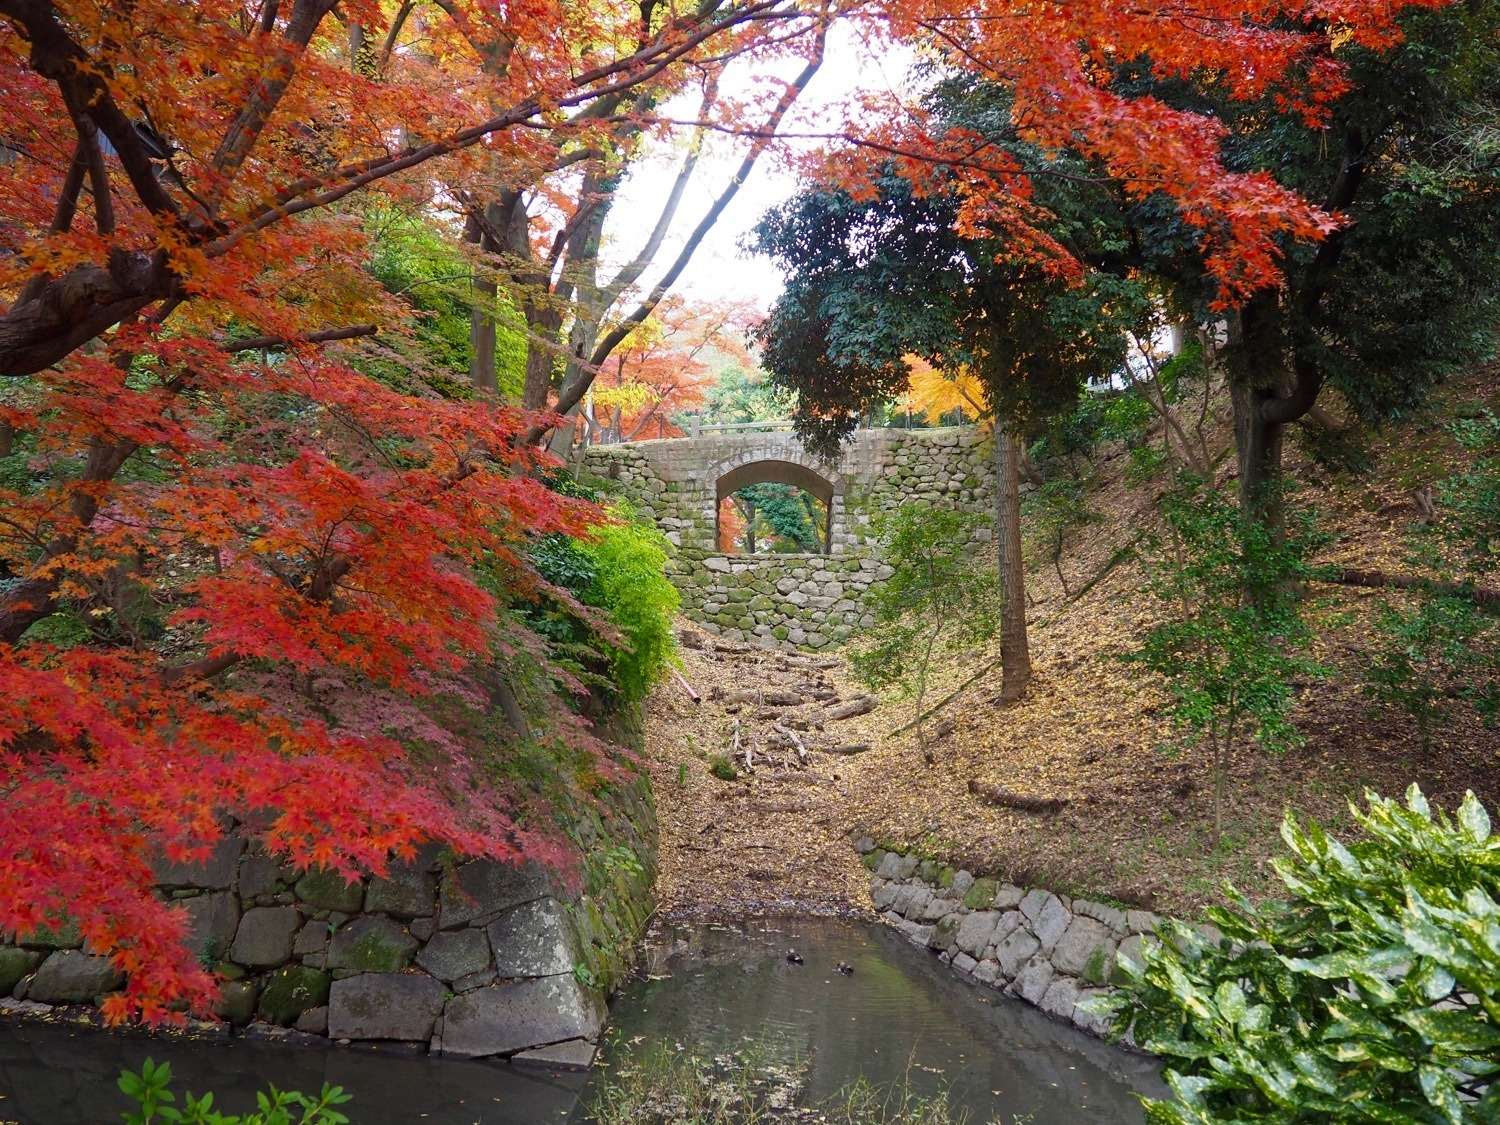 autumn leaves in Central Japan